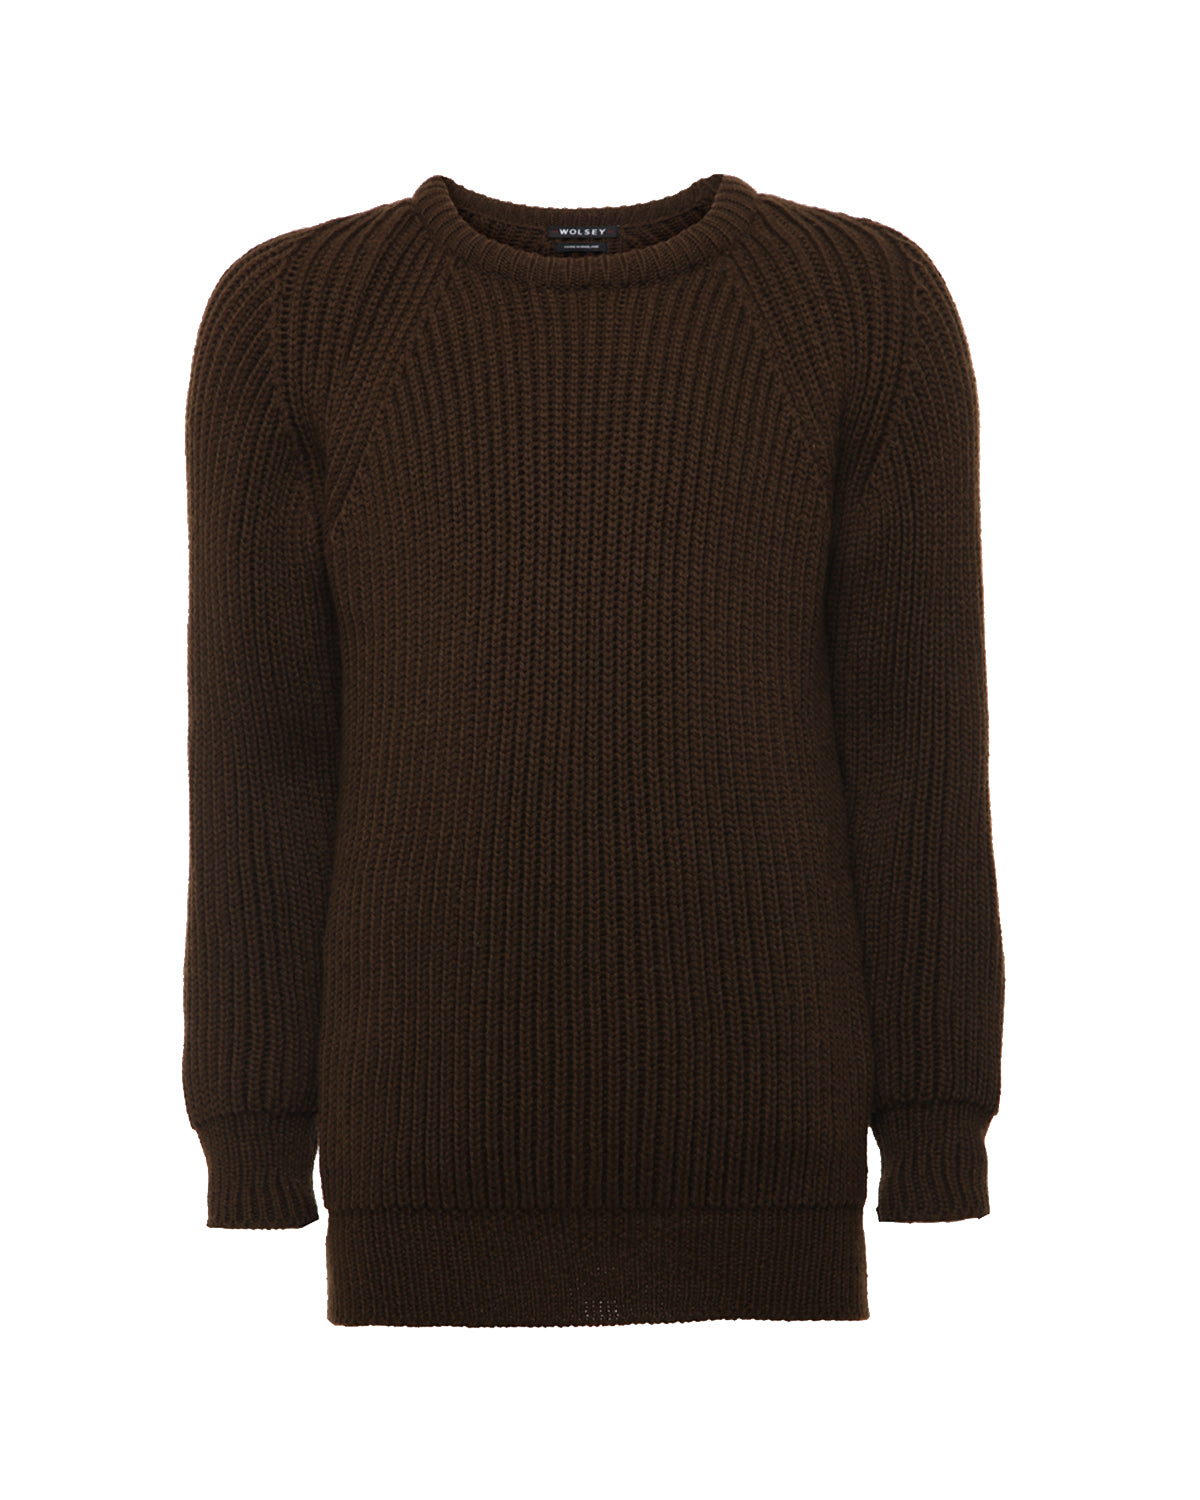 HUNTER WOOL FISHERMANS RIB SWEATER